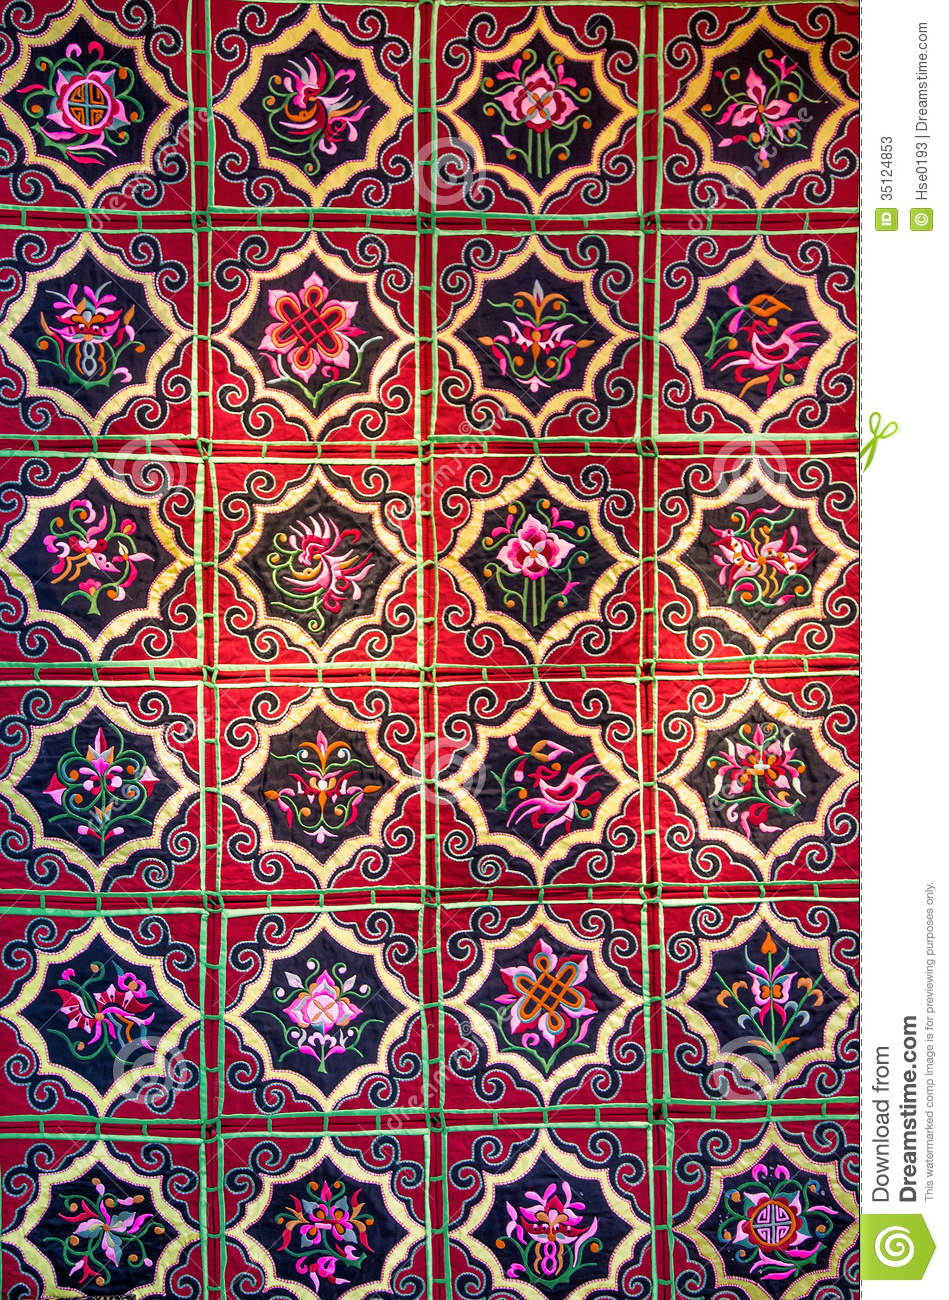 Zhuang Brocade Chinese Fabric With Flower Patterns Stock